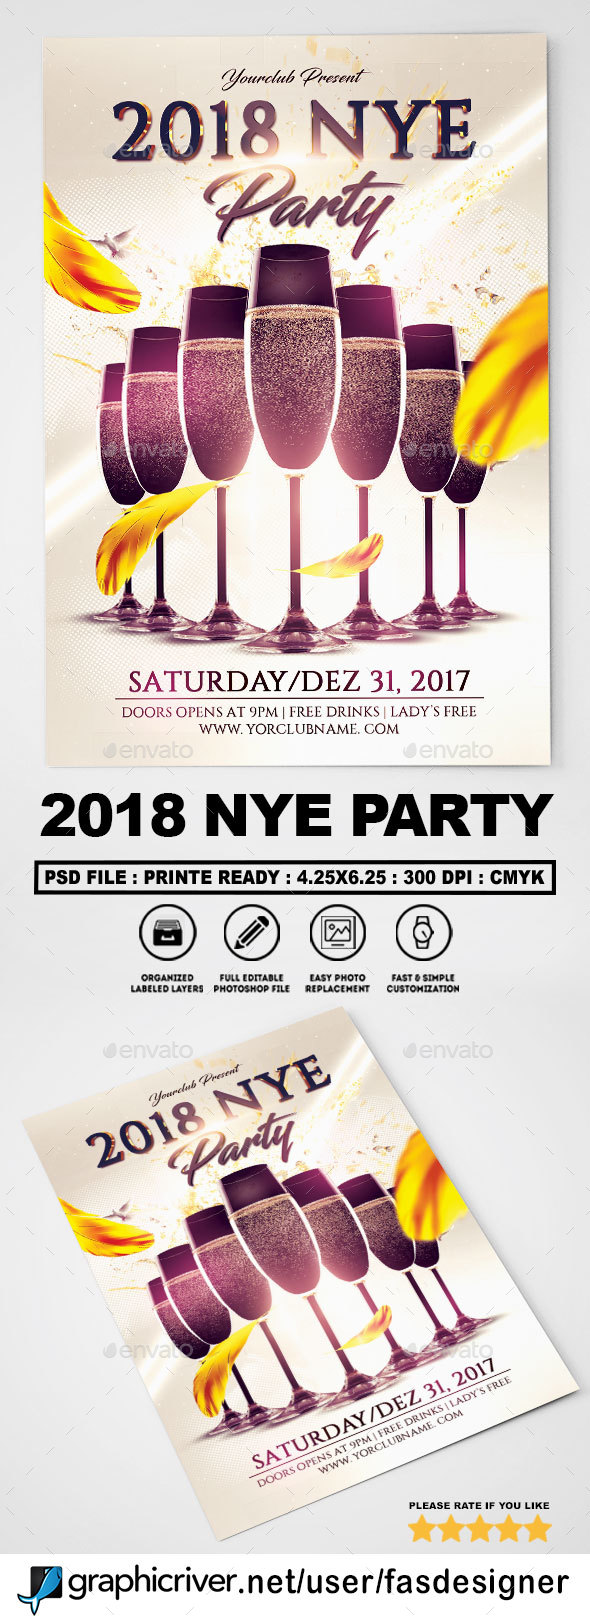 GraphicRiver 2018 NYE Party Flyer Template 20791153